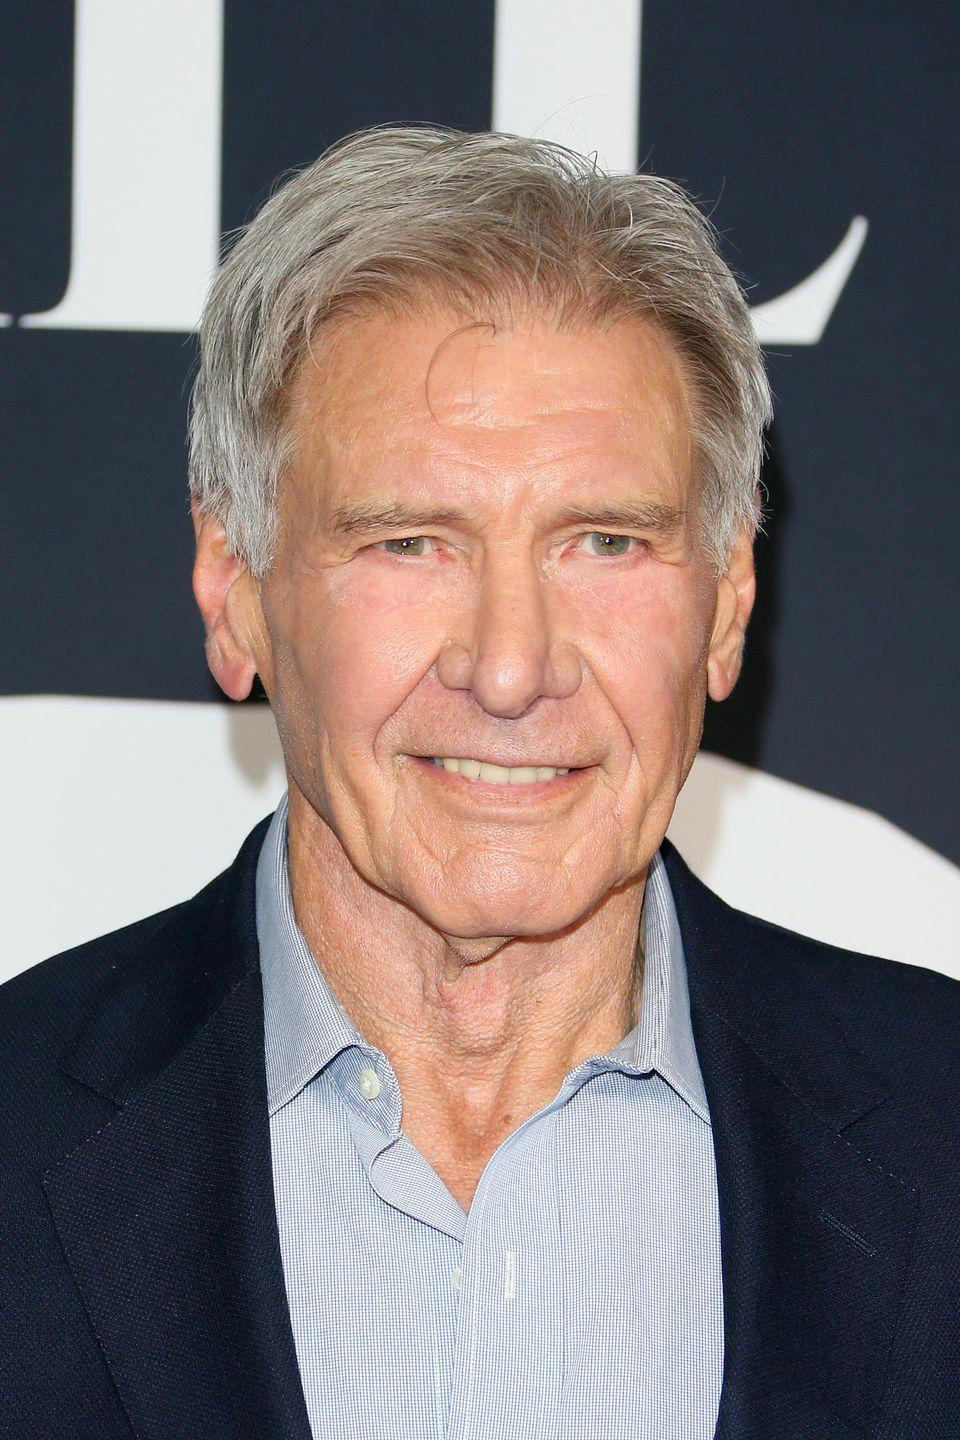 <p>Ford continued his long, successful career to present day. He reprised his role of Han Solo in the 2015 movie <em>Star Wars: The Force Awakens. </em>He is involved in an untitled <em>Indiana Jones </em>film, slated for 2022. Ford lives on a ranch in Wyoming with his wife Calista Flockhart. Outside of acting, he is very involved in environmental causes, serving as vice-chair of Conservation International. He is also a licensed pilot.<br></p>